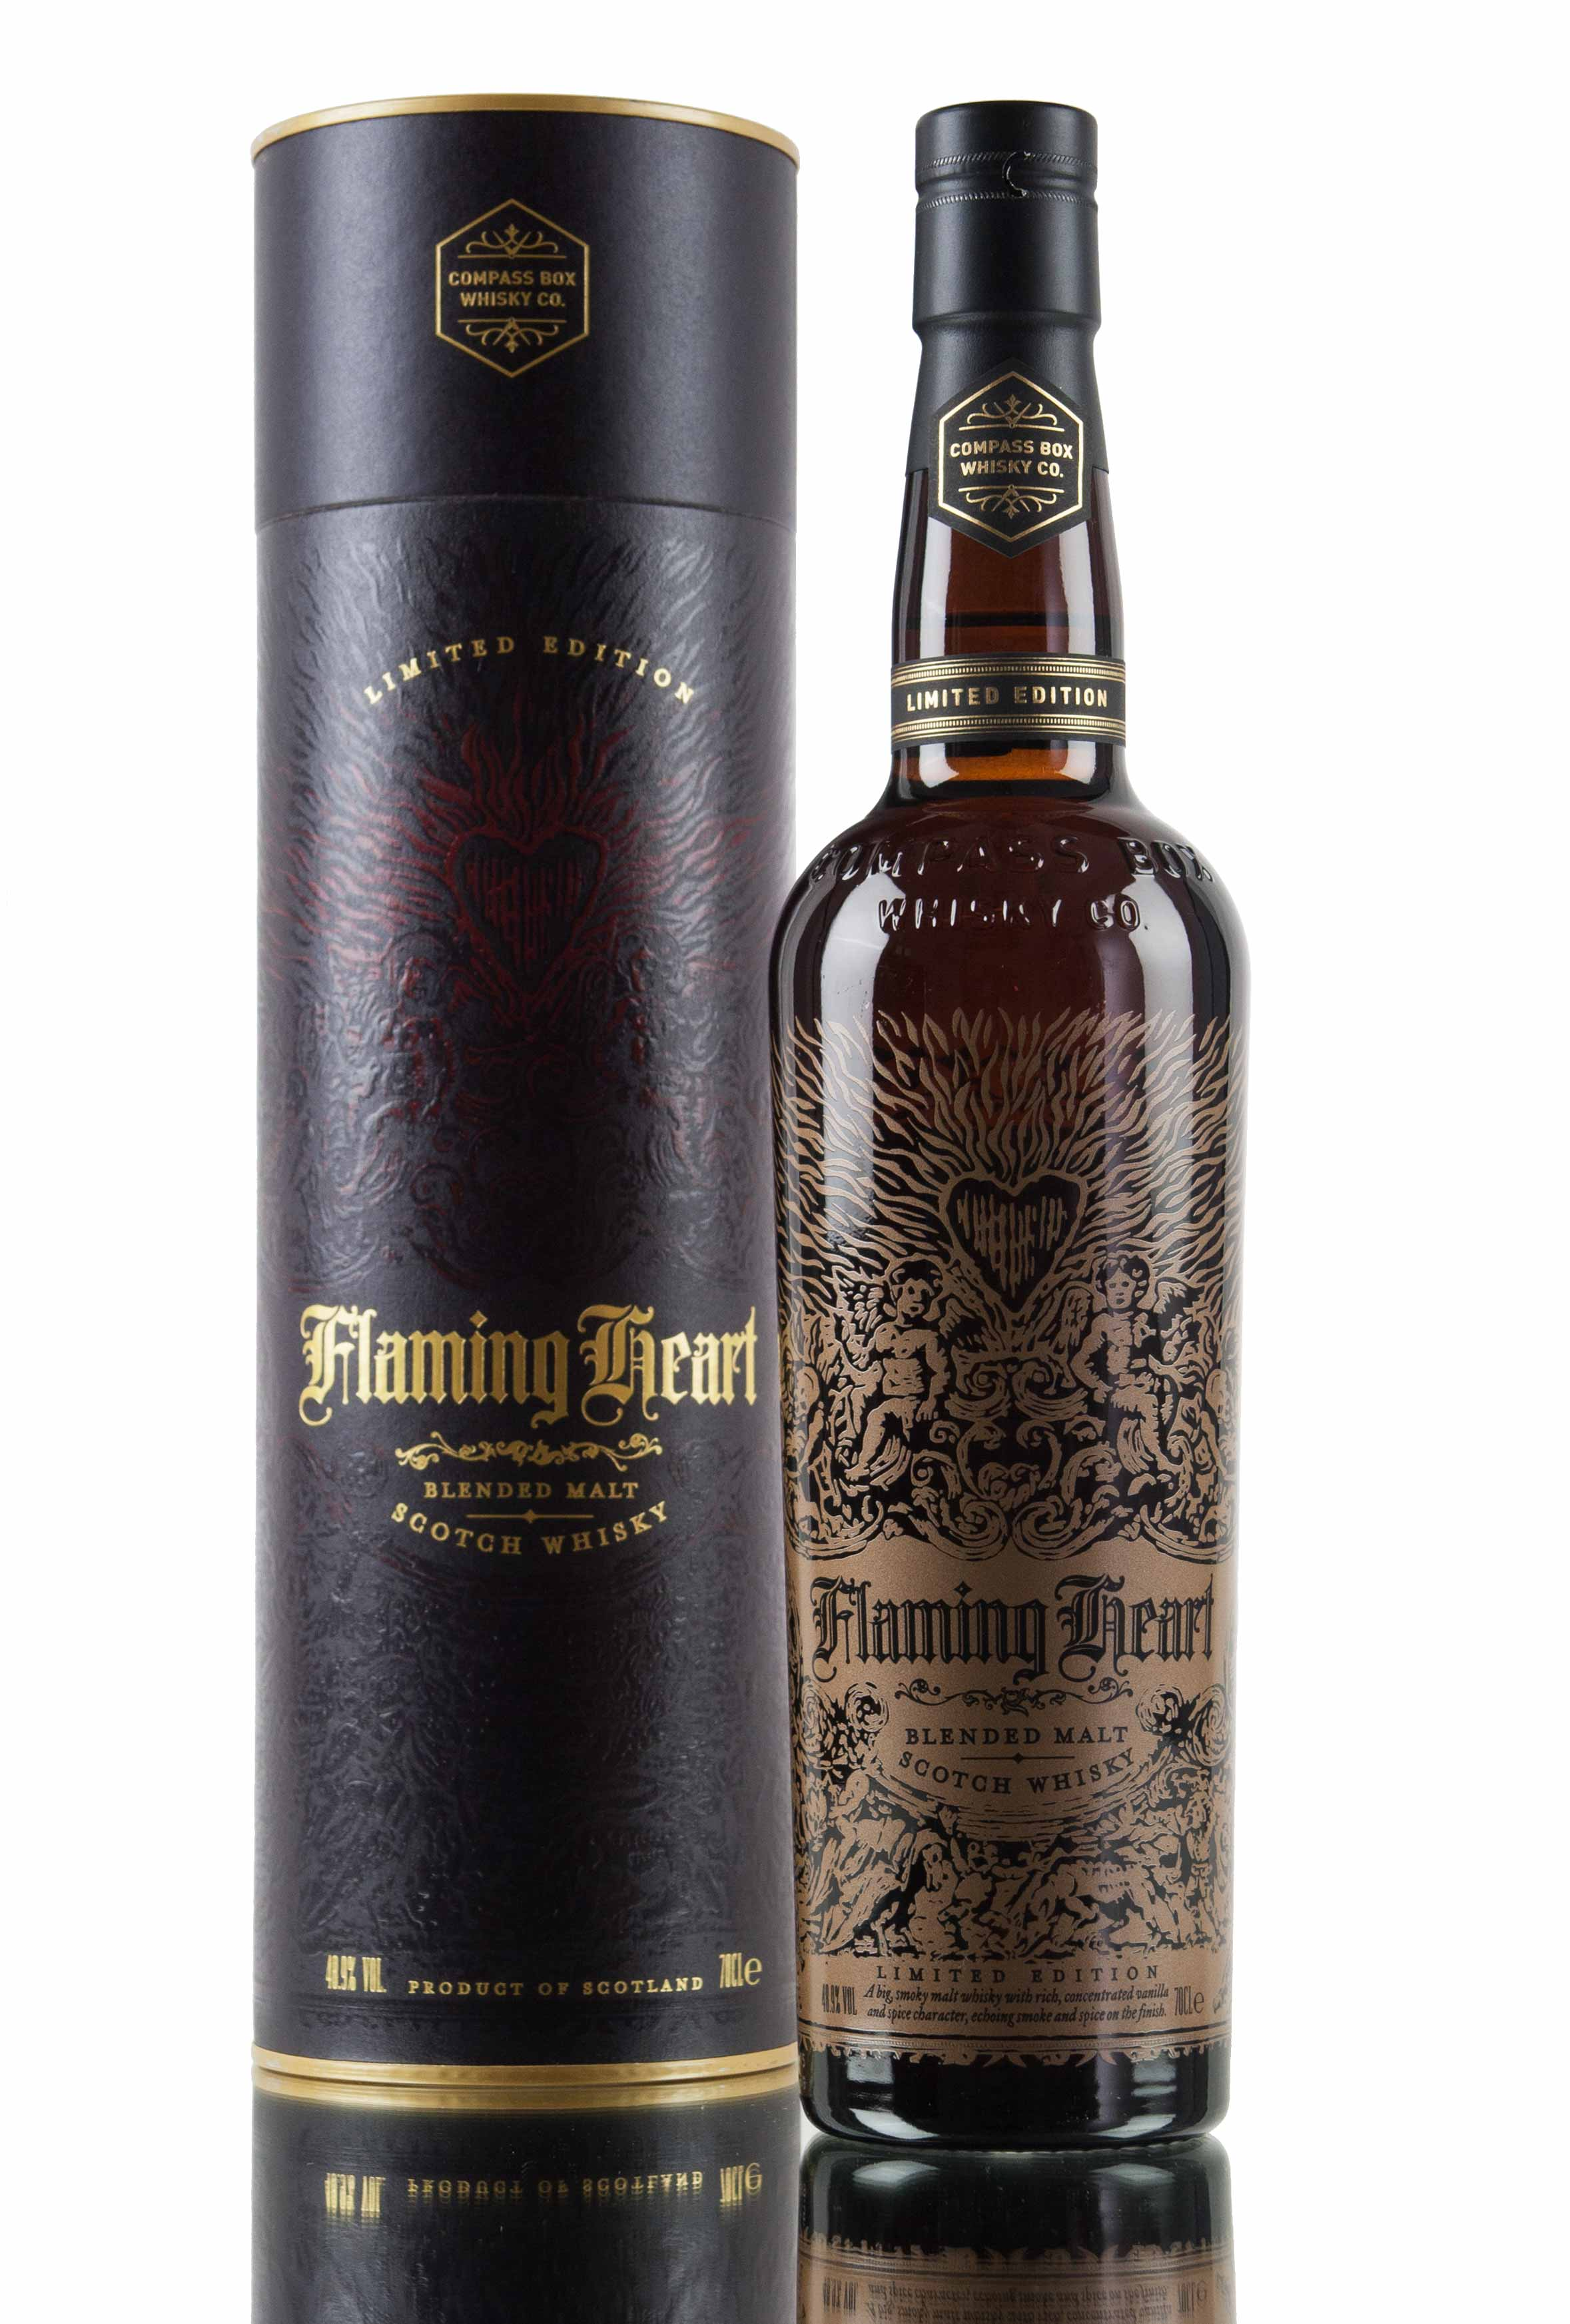 Compass Box - Flaming Heart 15th Anniversary